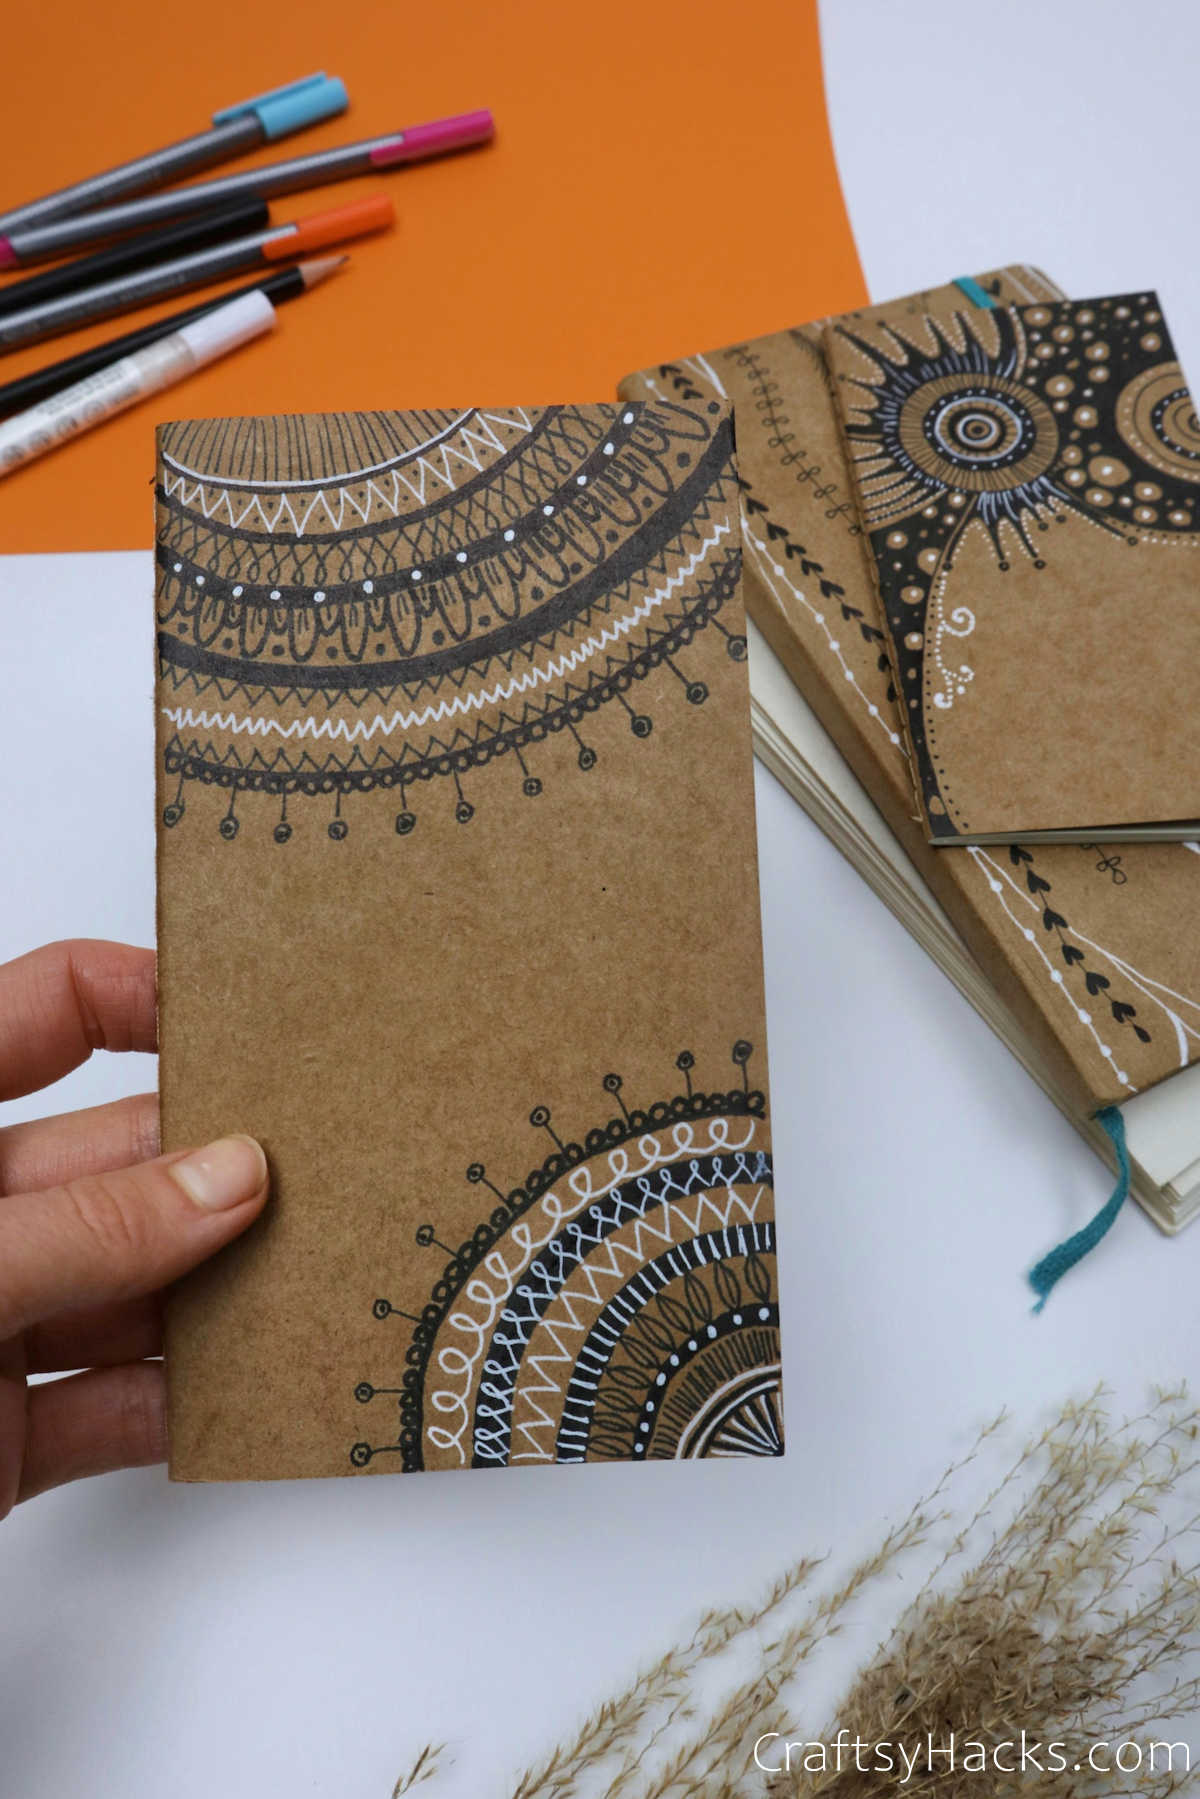 completed journal cover